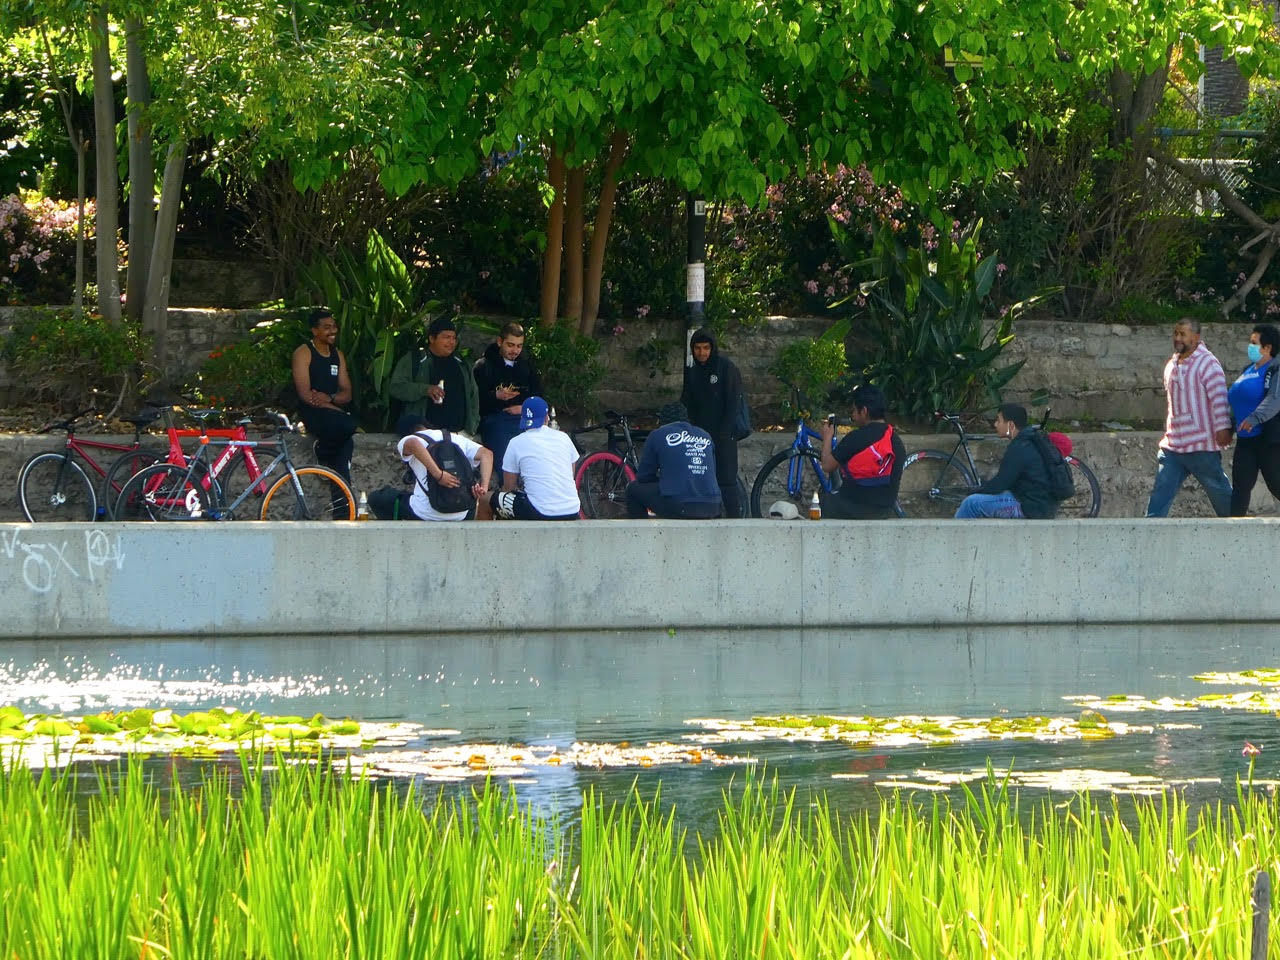 guys hanging out at echo park lake sandy driscoll.jpg